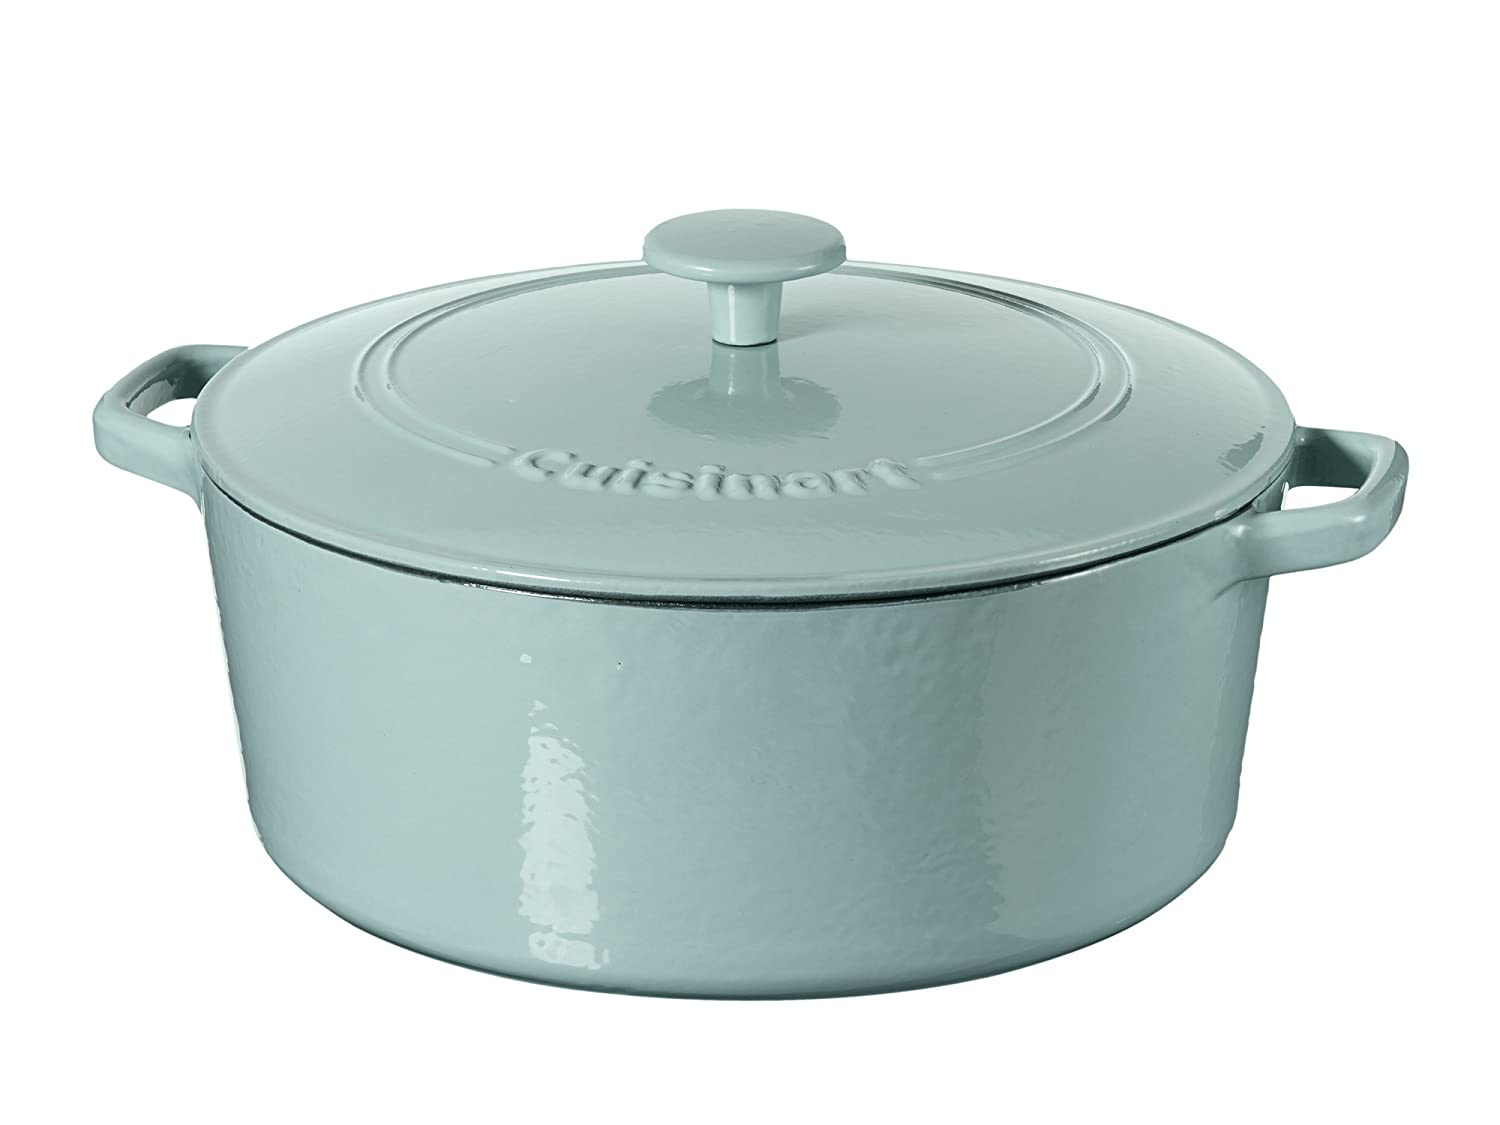 Amazon.com: Cuisinart Casserole Cast Iron, Light Blue, 7 quart ...